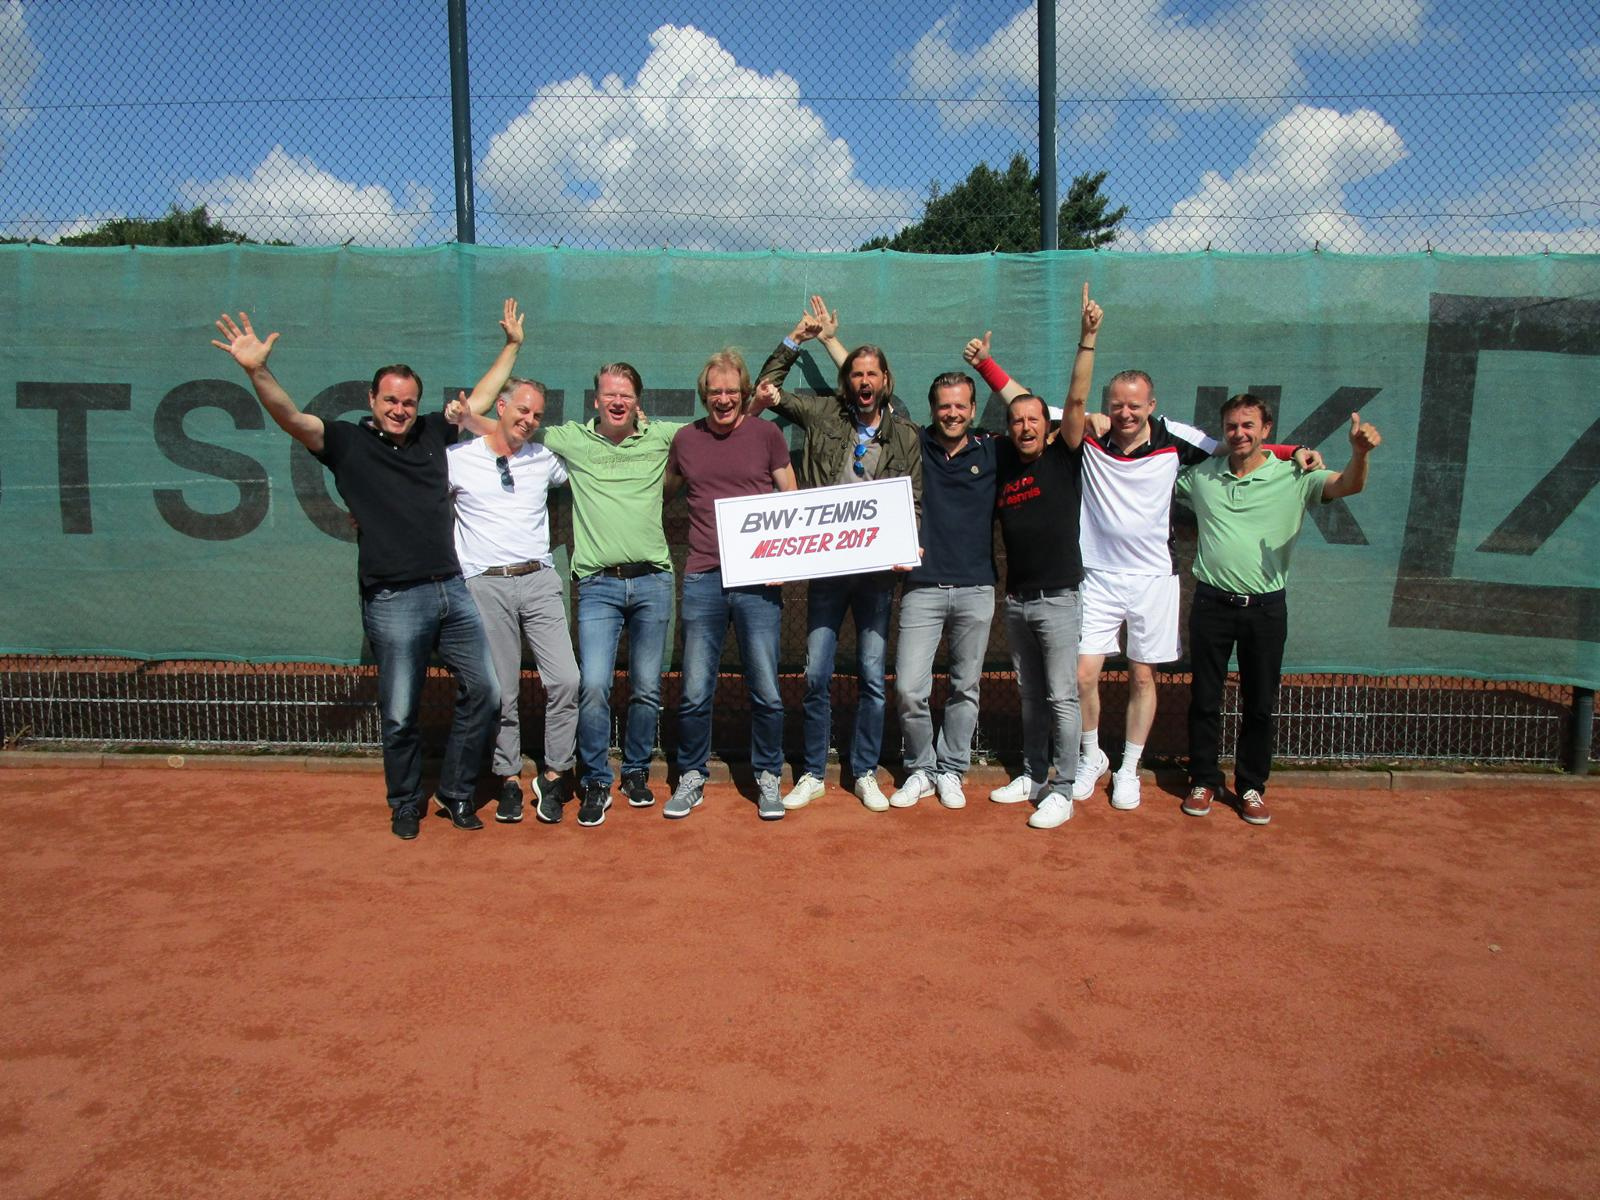 Tennisteam BWV